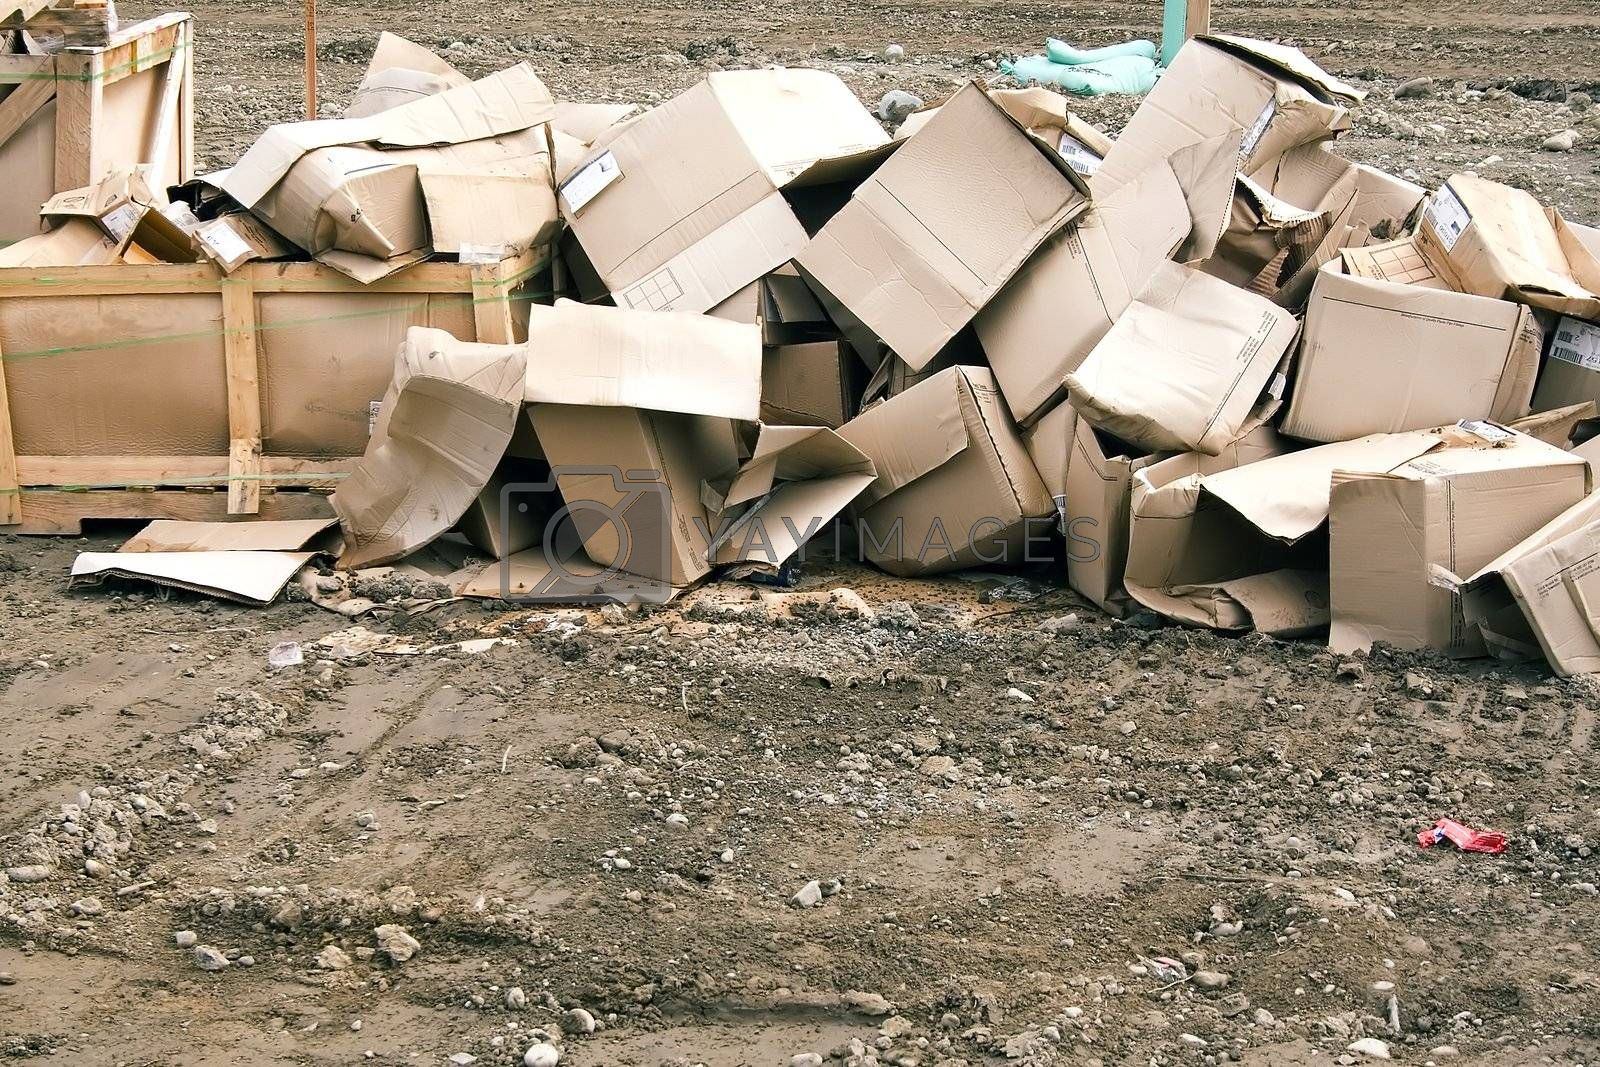 Empty cardboard boxes ready for recycling at a construction site.